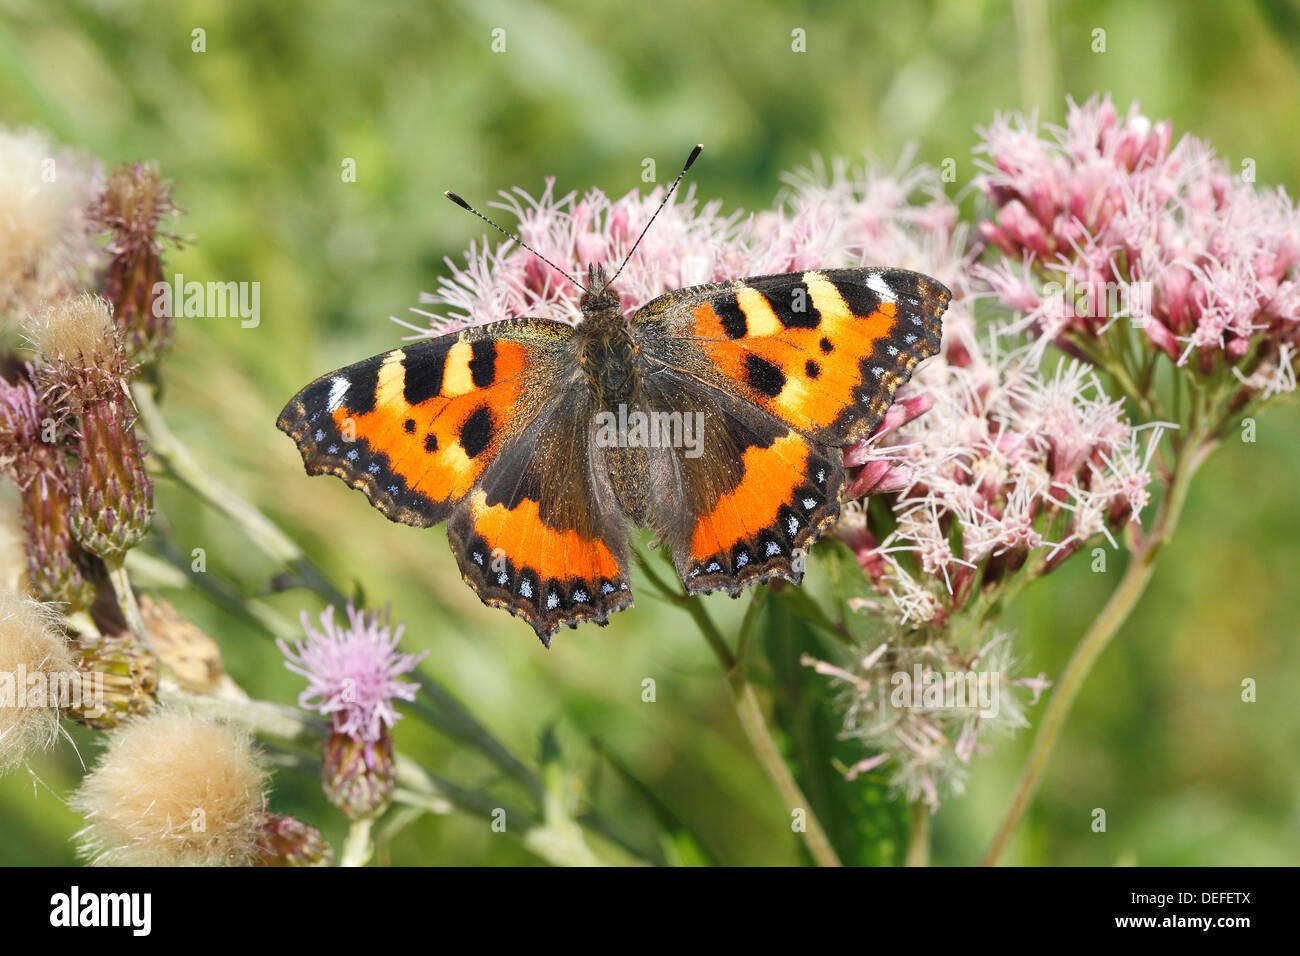 Small Tortoiseshell (Aglais urticae) butterfly with open wings, North Rhine-Westphalia, Germany - Stock Image